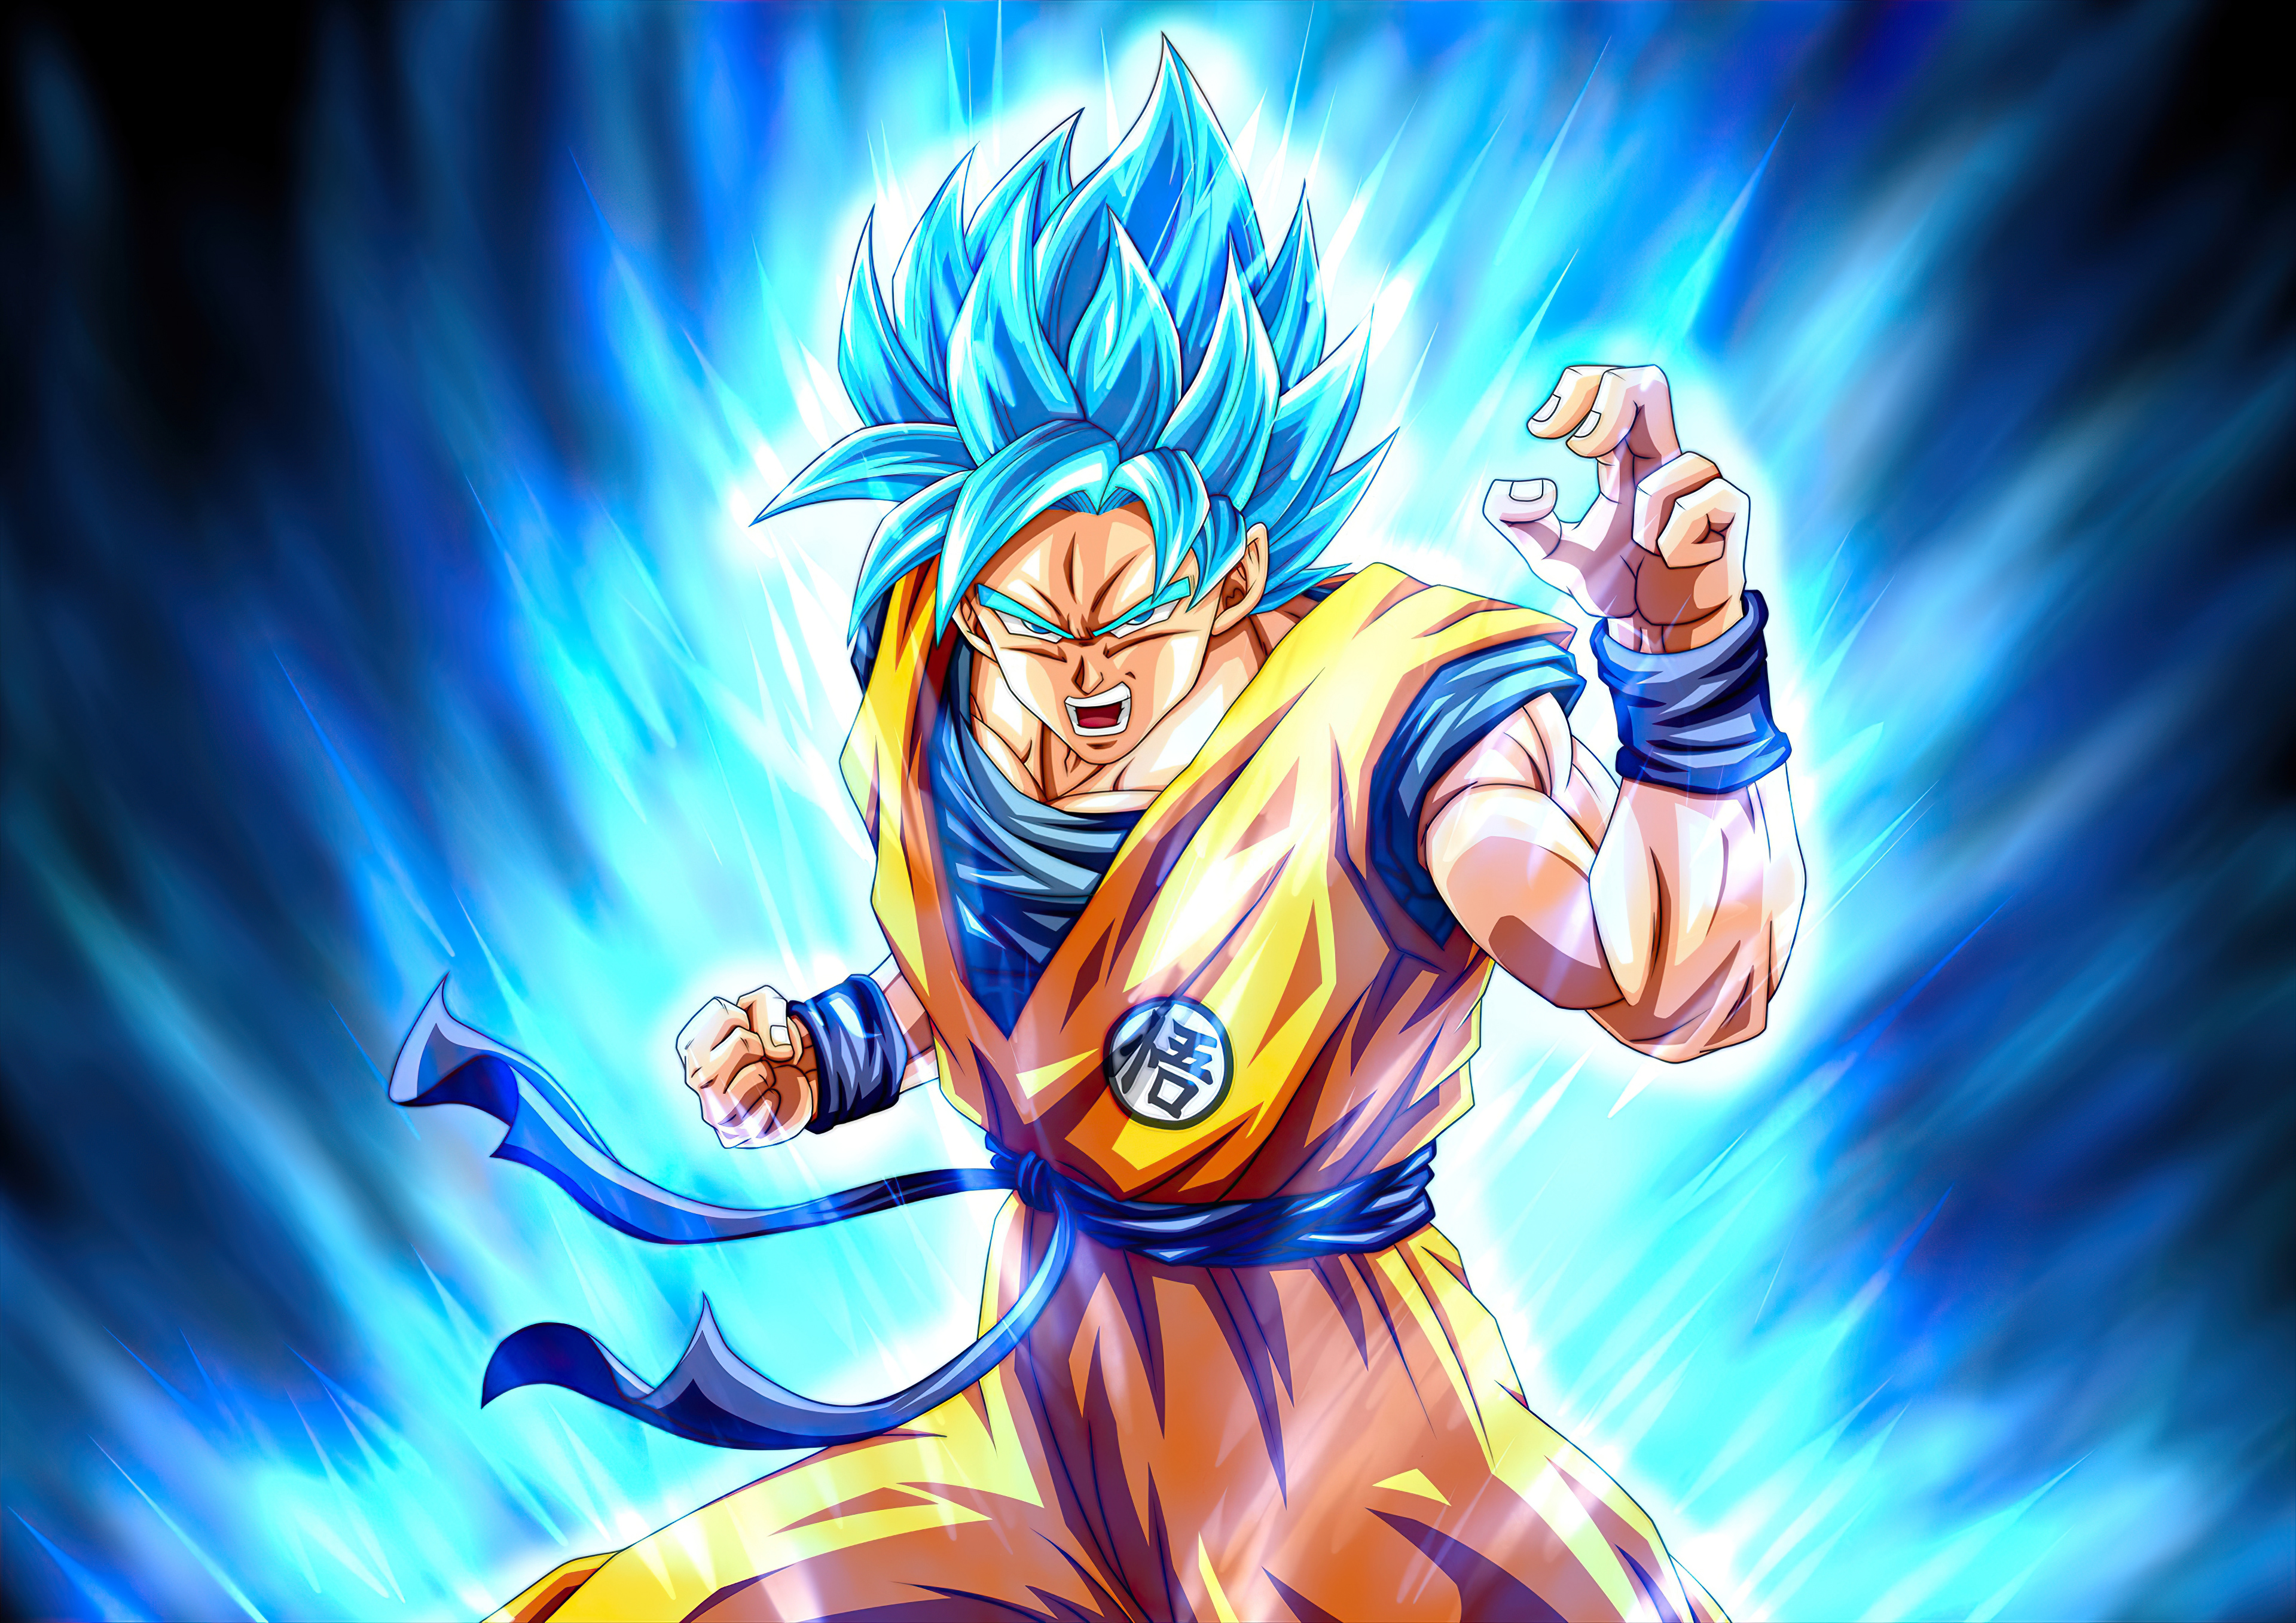 Dragon Ball Son Goku 4k Hd Anime 4k Wallpapers Images Backgrounds Photos And Pictures